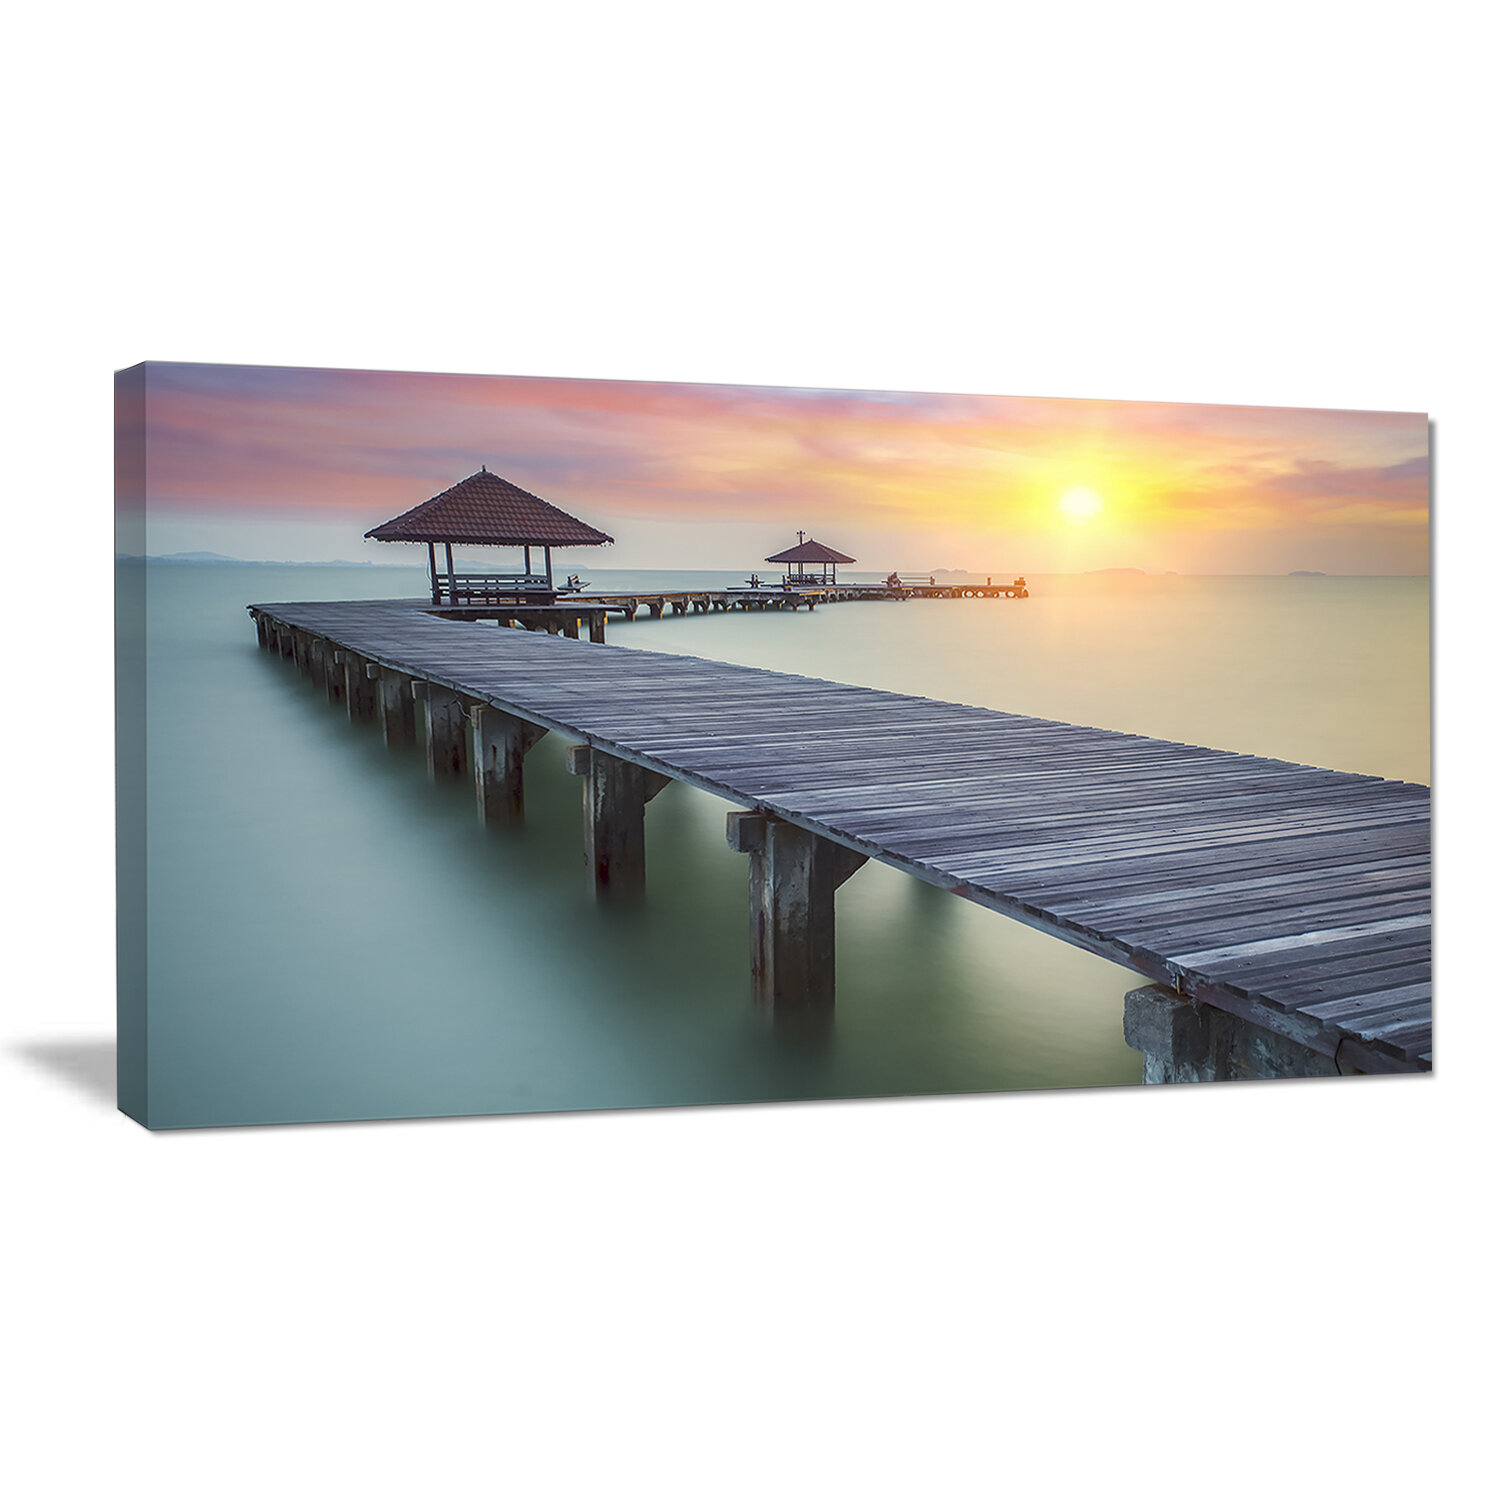 Bay Isle Home Long Wooden Bridge Into The Sunrise Sea Pier Photographic Print On Wrapped Canvas Wayfair